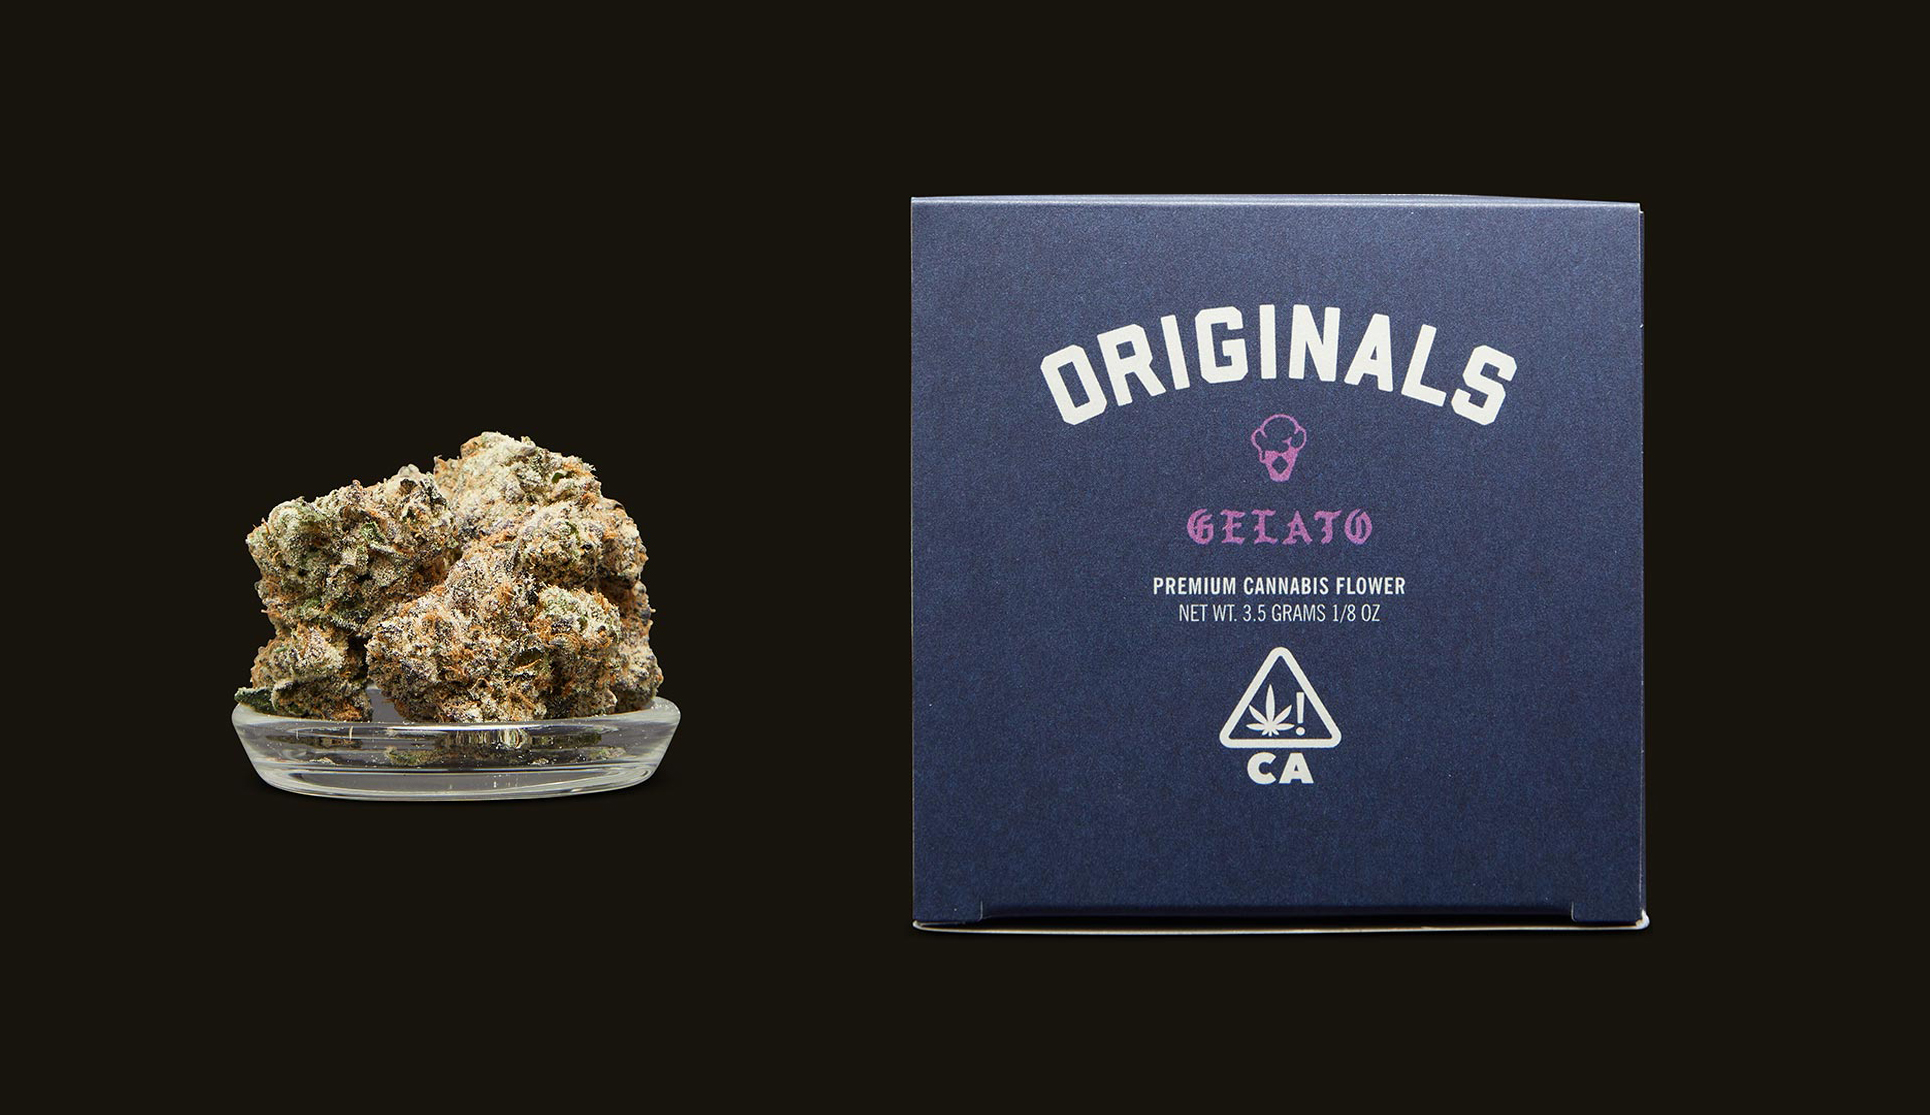 Complete Guide To Buying Originals Weed At Originals San Diego